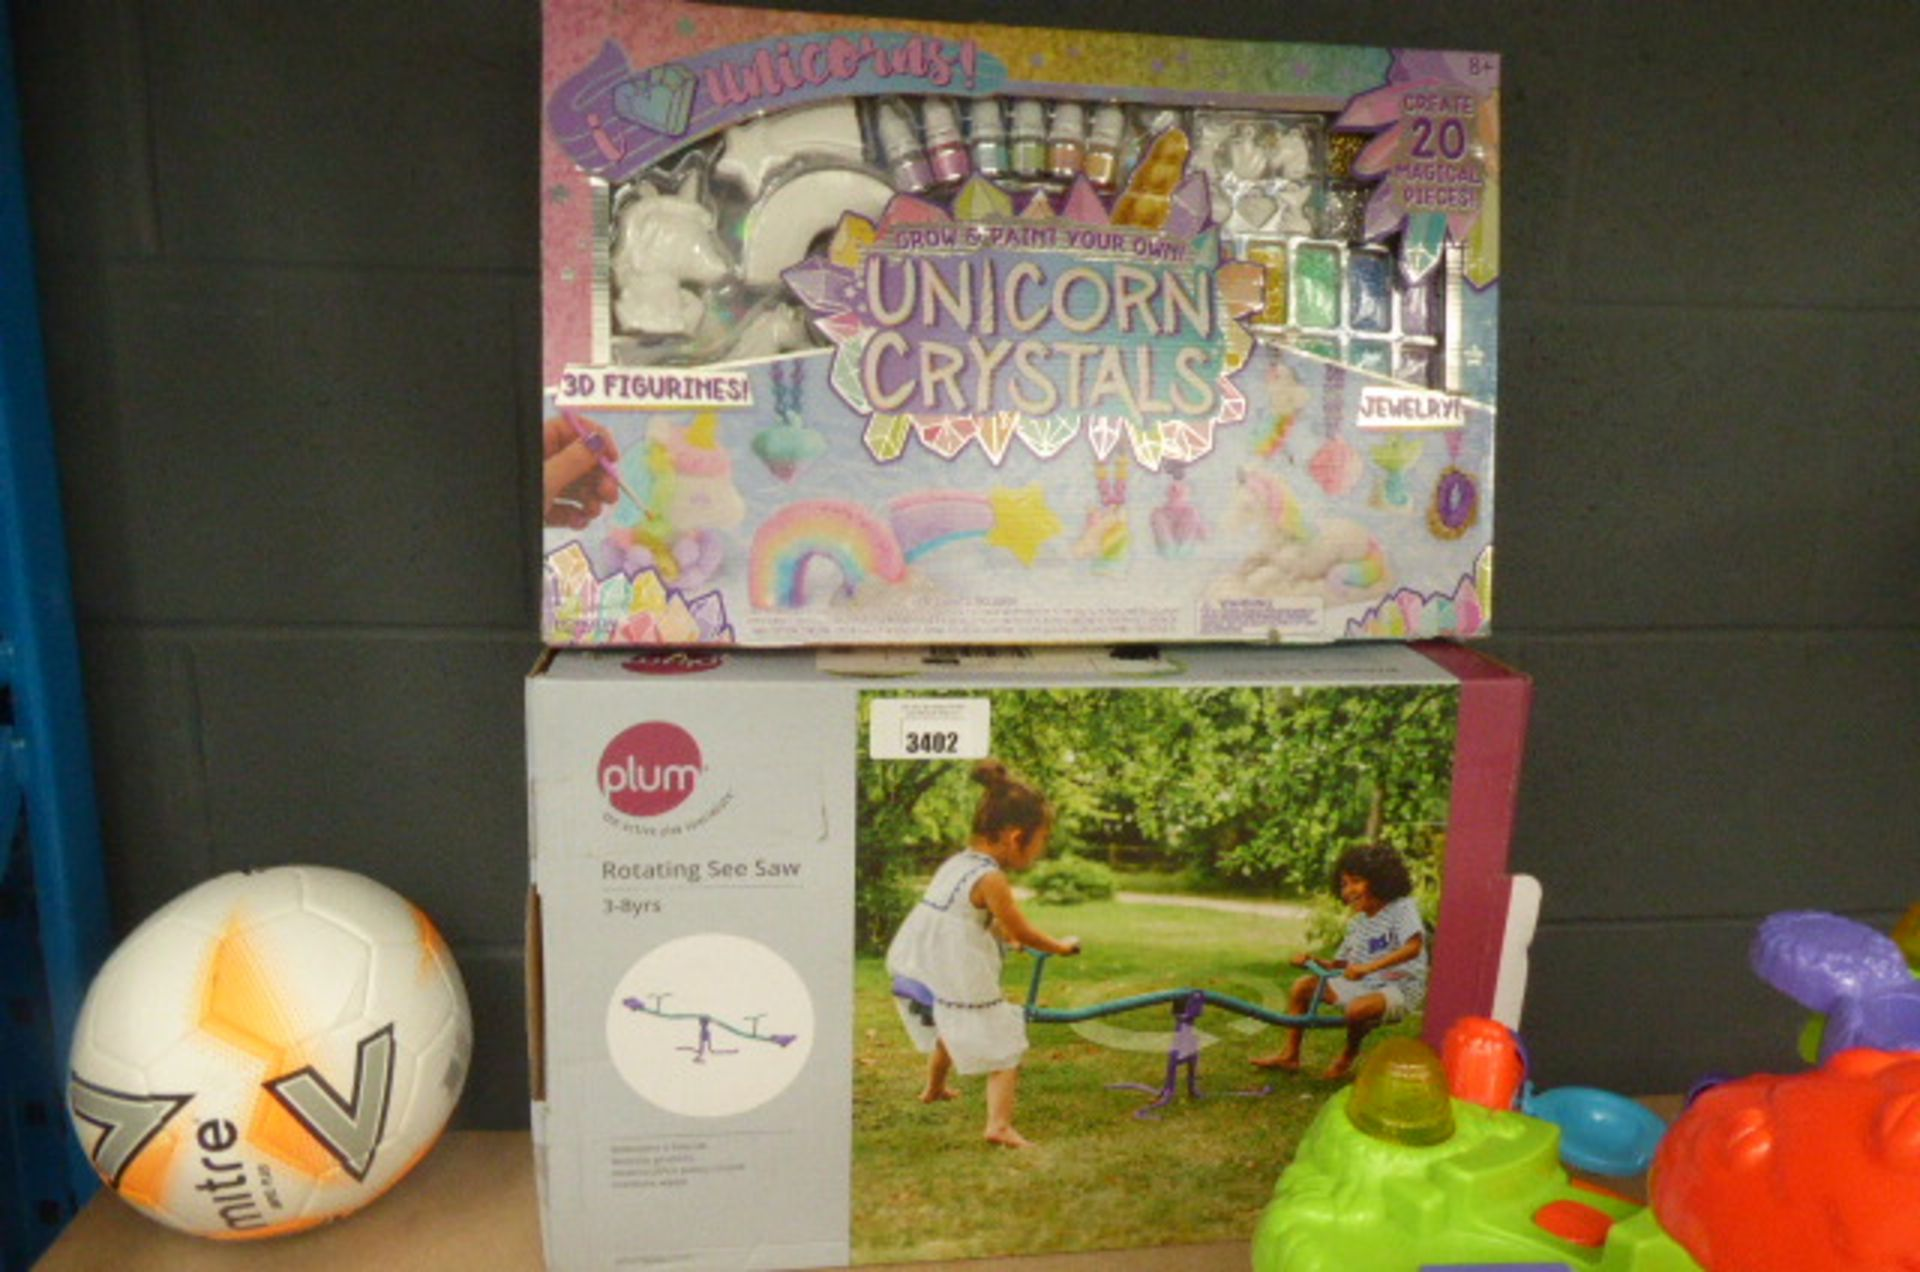 Lot 3402 - A rotating seesaw and a Unicorn Crystal set